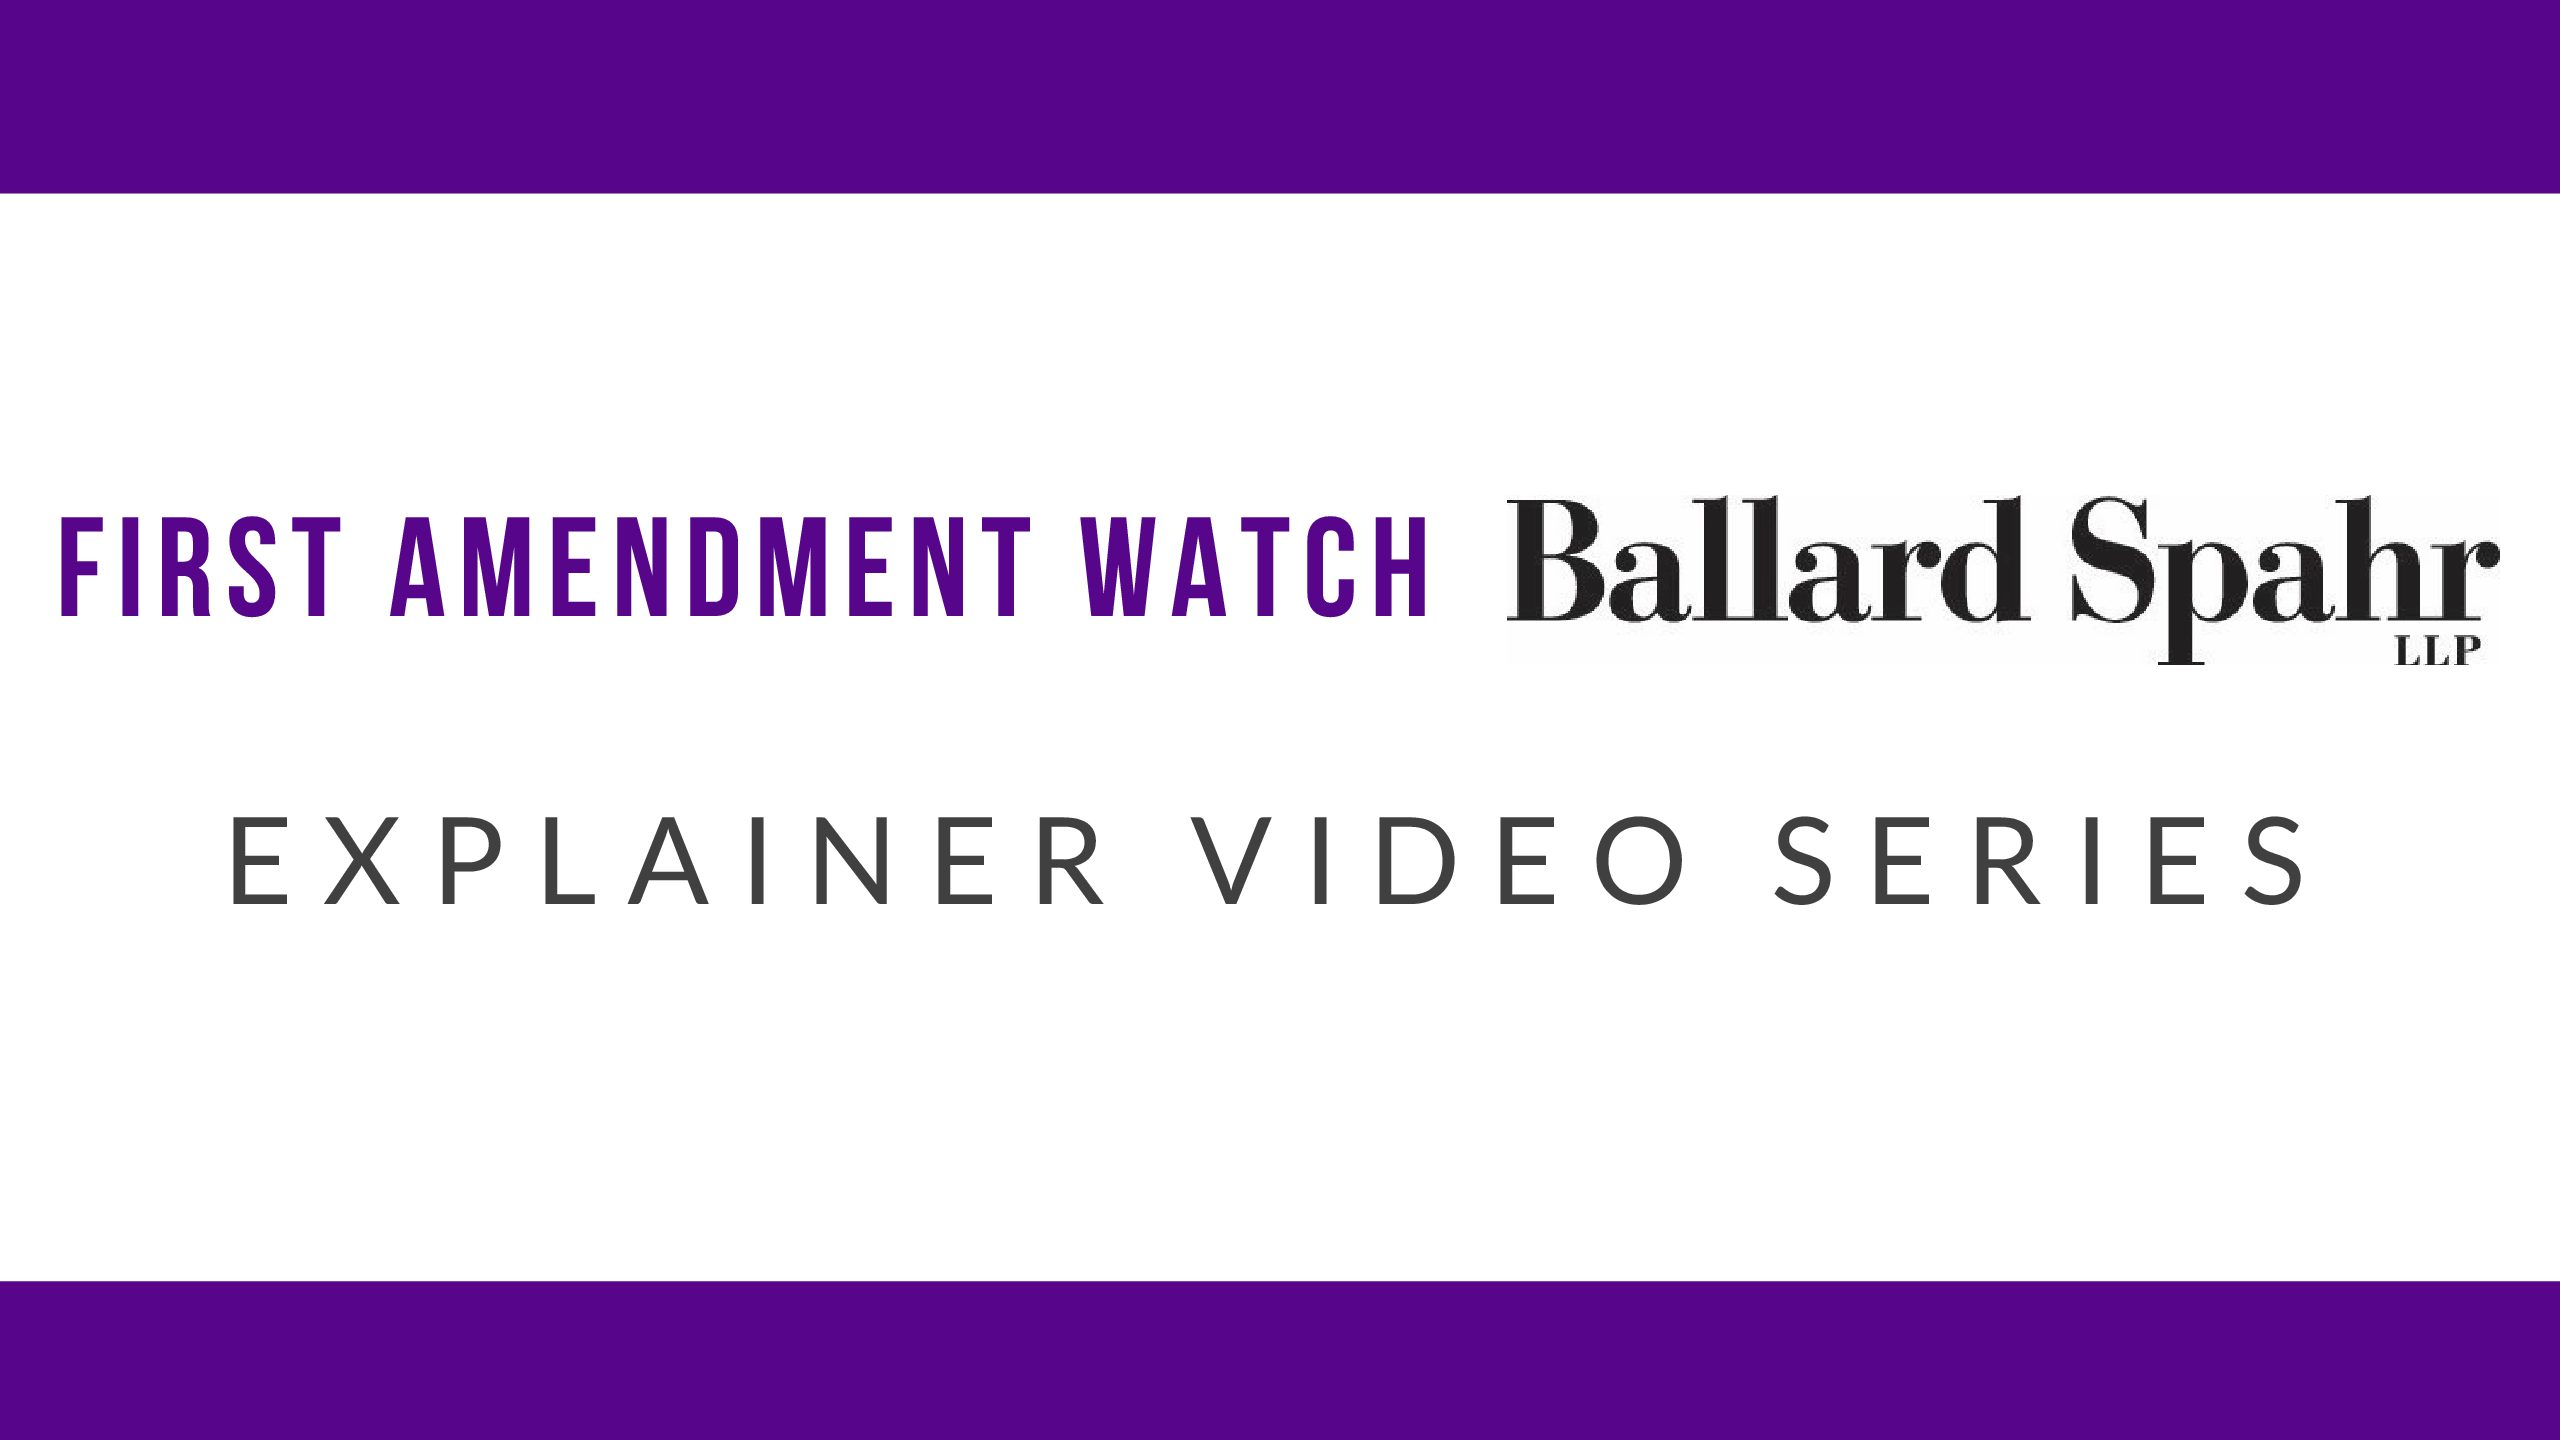 First Amendment Watch | Ballard Spahr Collaborative Video Series